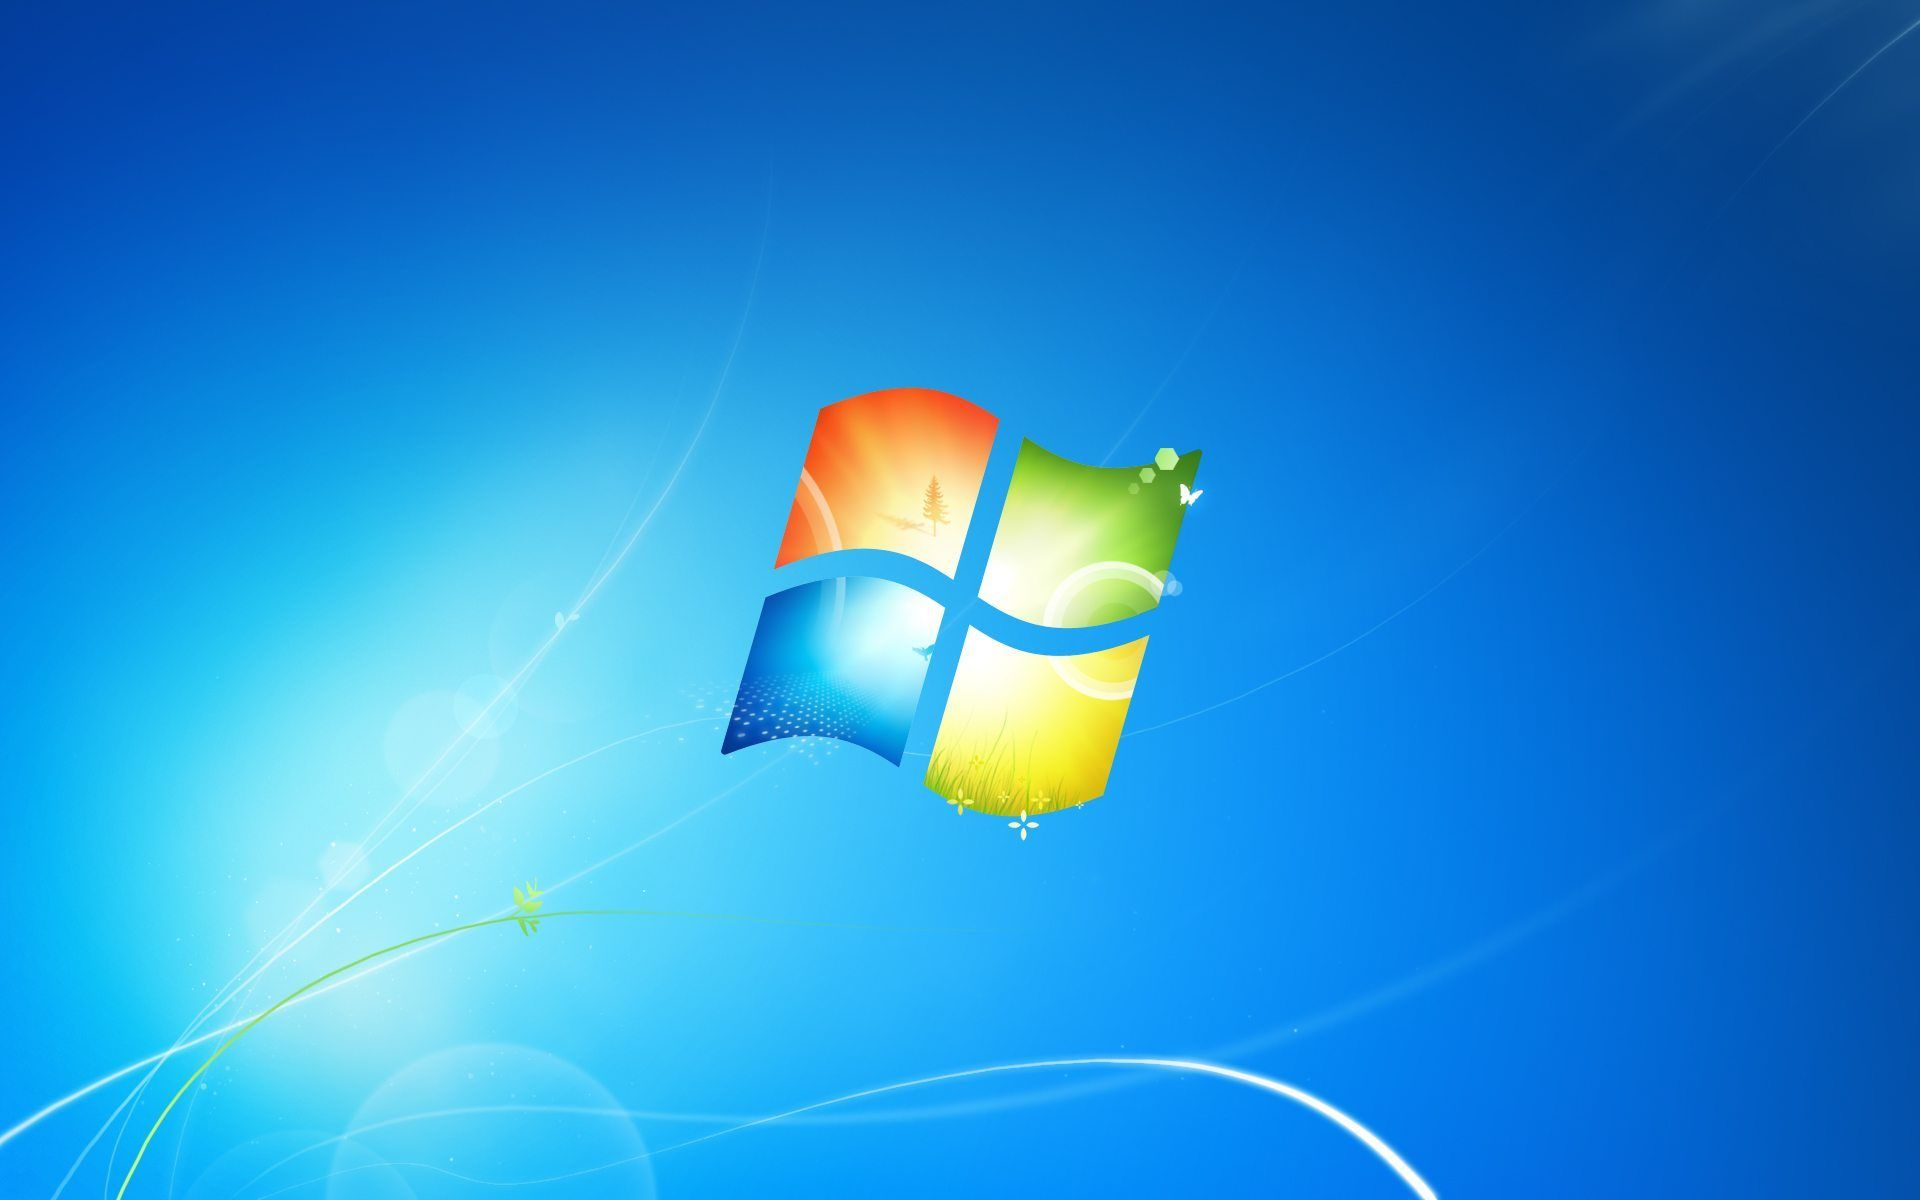 Google extends Windows 7 Chrome end-of-support by 6 months